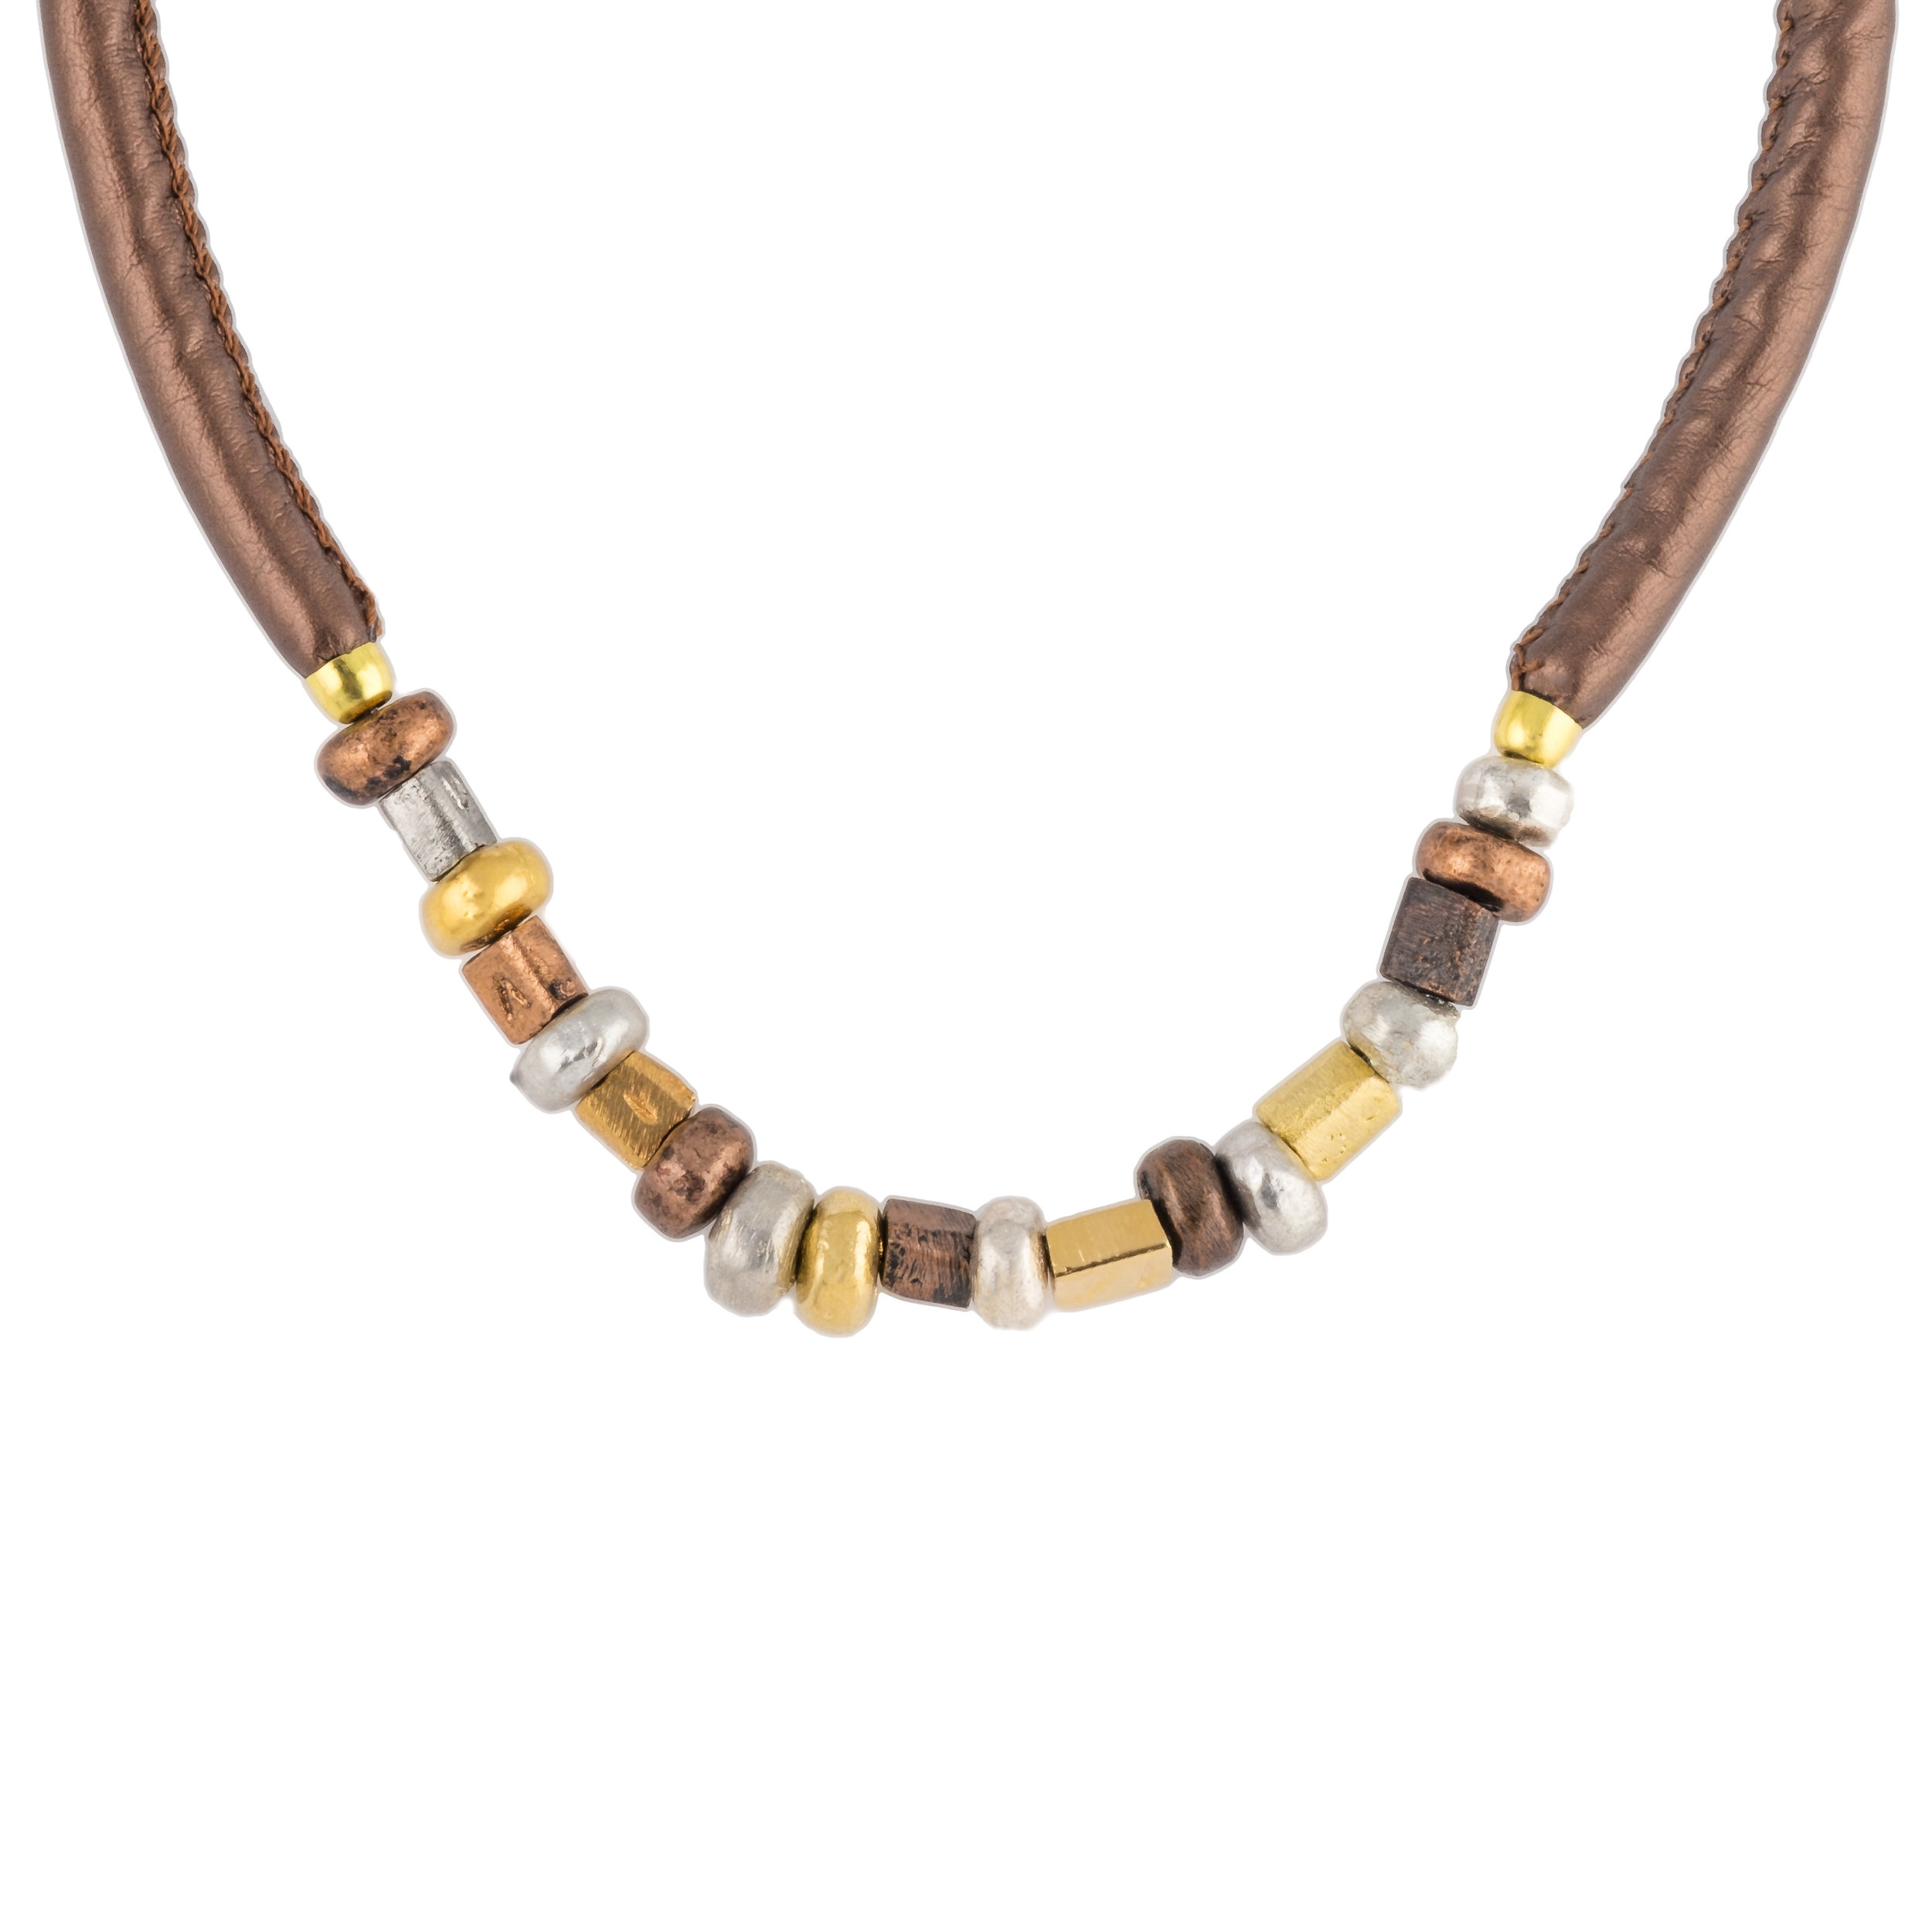 Necklace - 1-2 (1 of 1)-Edit.jpg